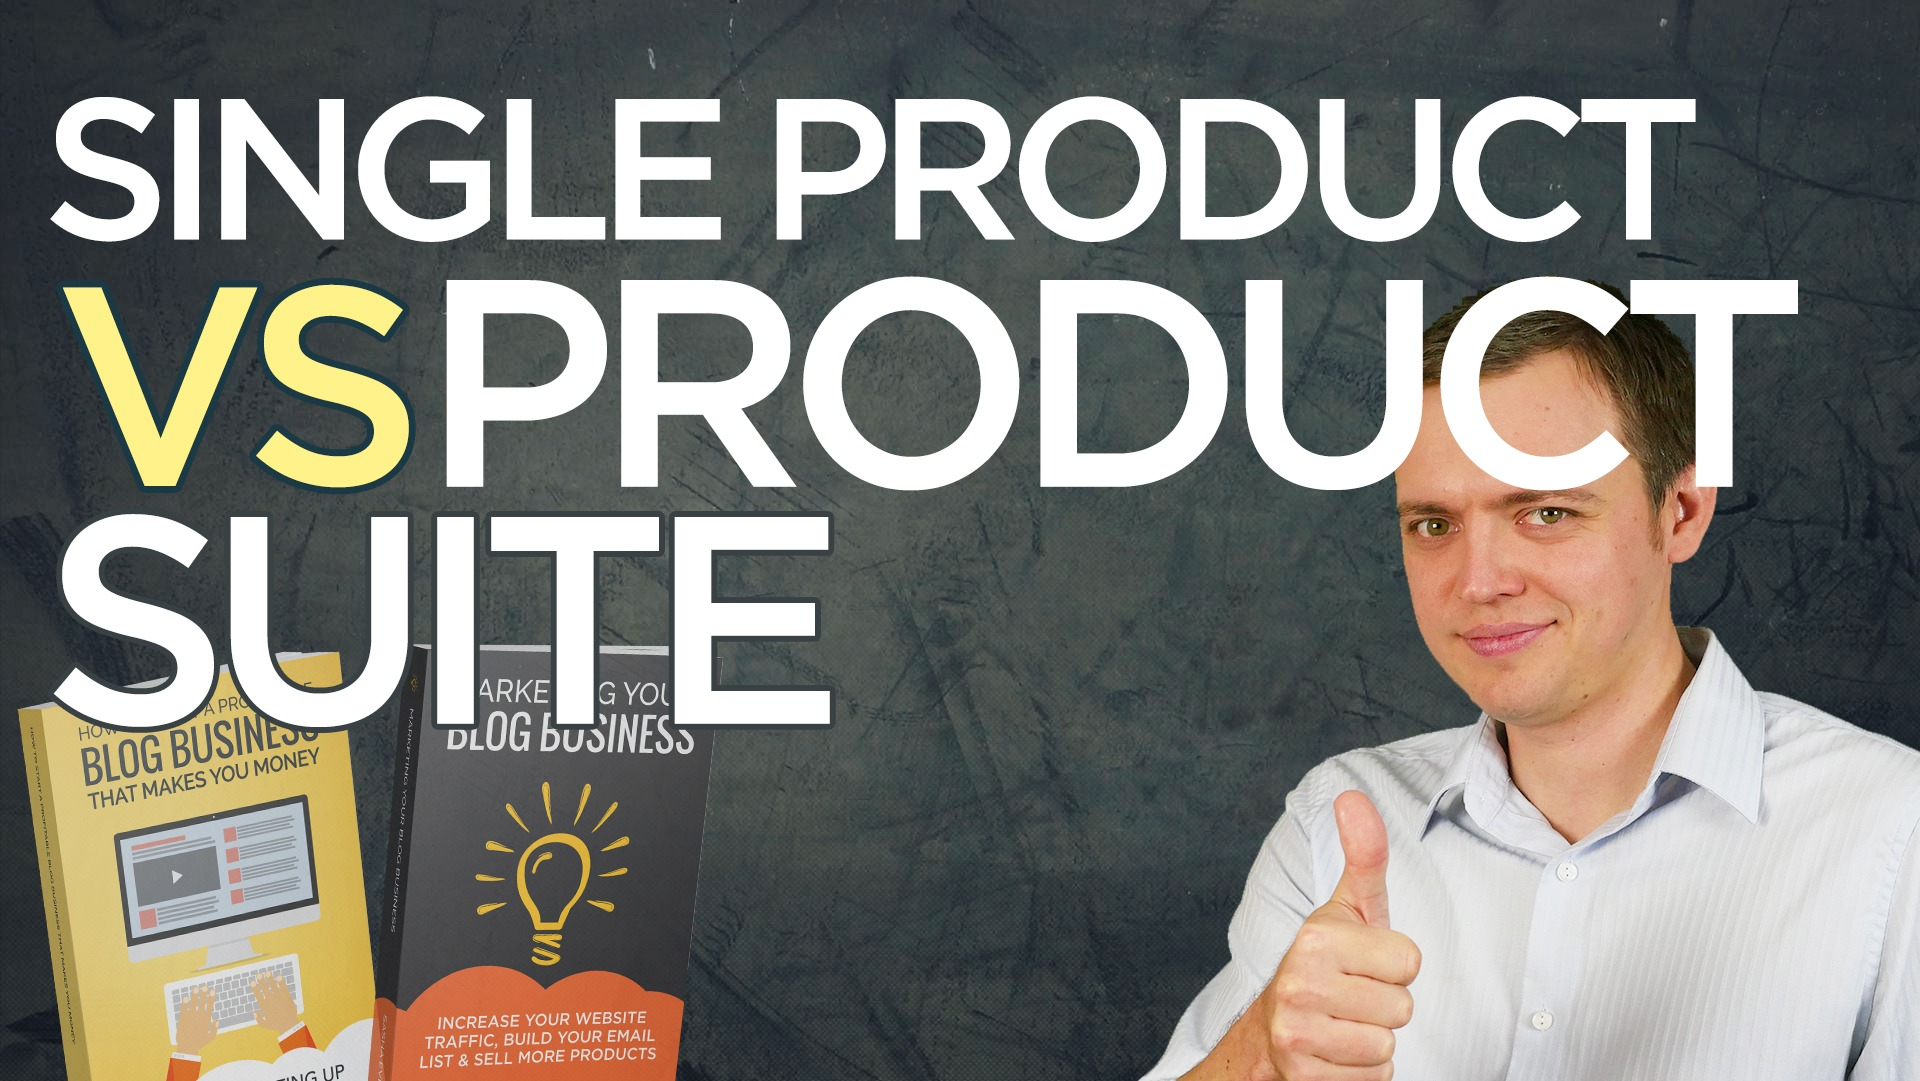 Single Product Idea vs Running a Business (Product Suite)